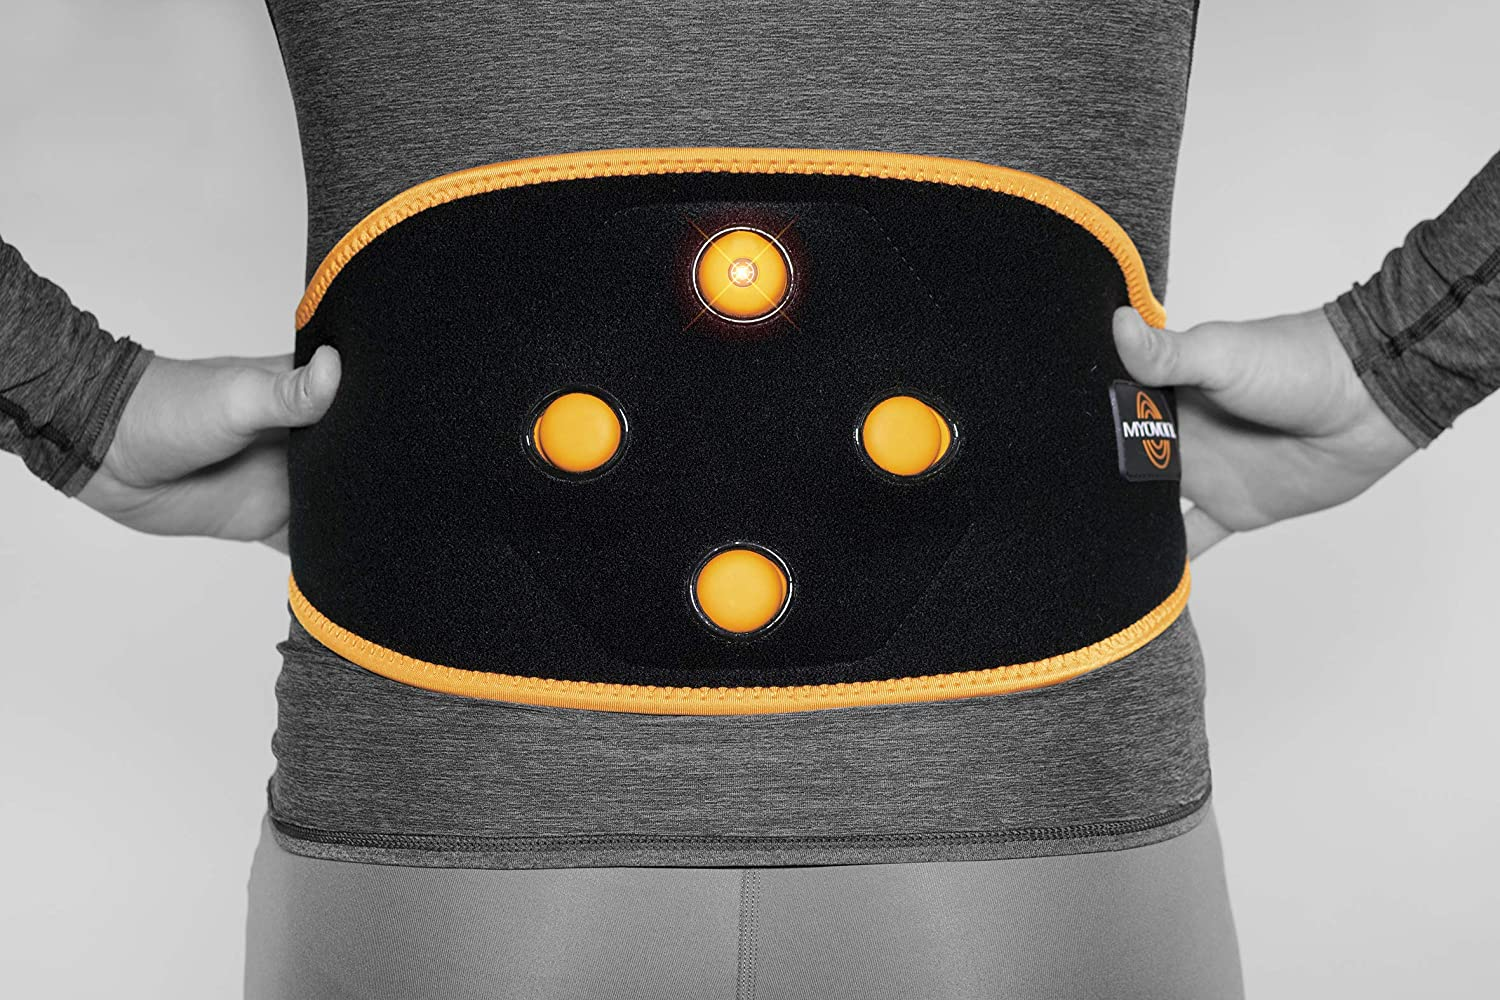 Myovolt Wearable Massage Technology for Back CORE Vibration Therapy Device Warm up, Loosen, and Relax Sore Stiff Muscles Back Pain Relief